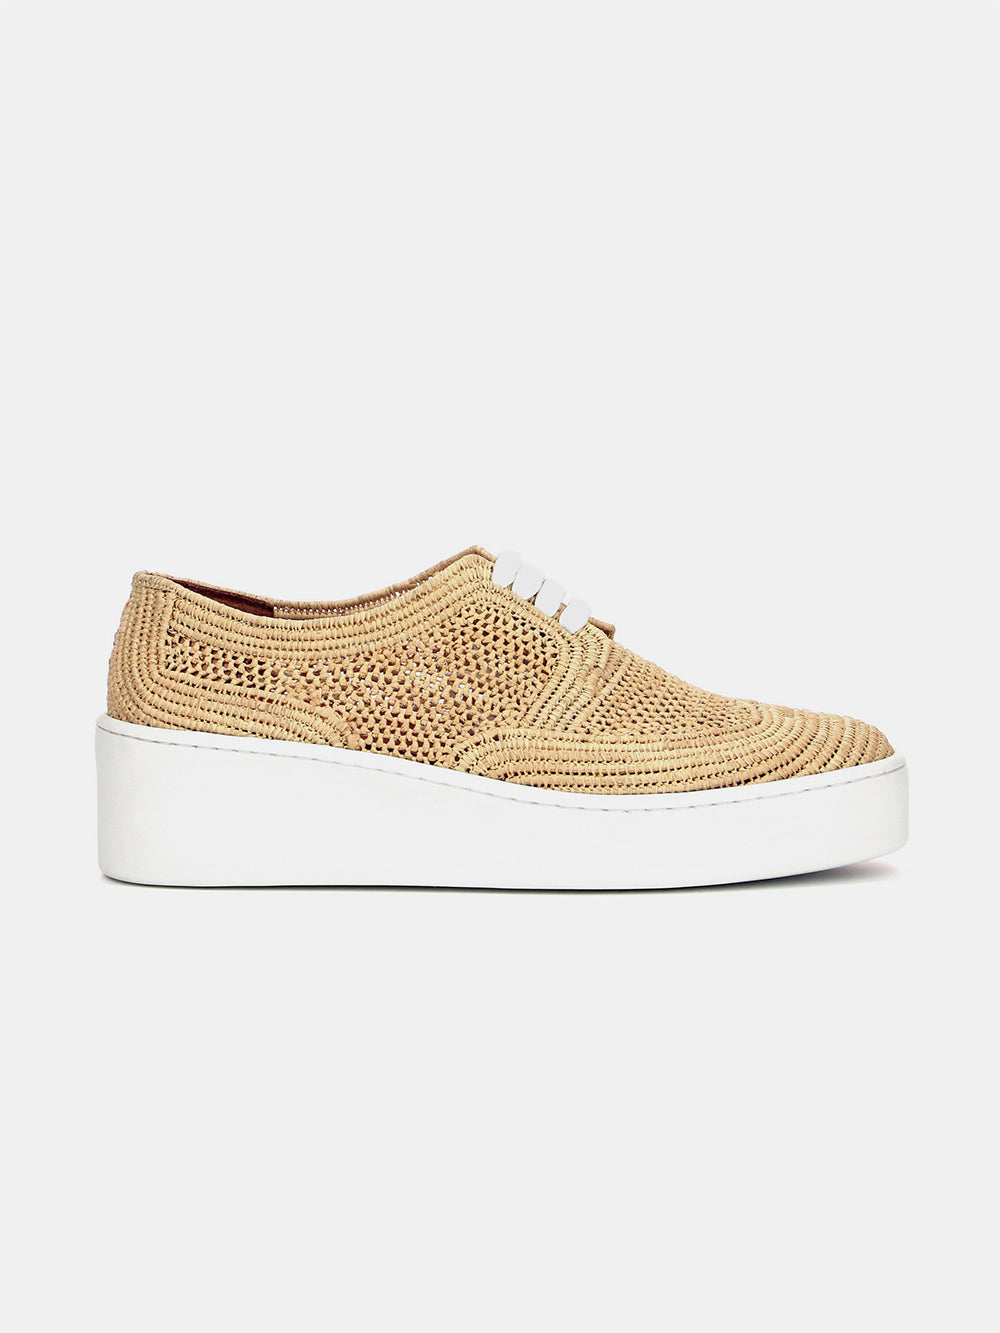 clergerie taille sneaker